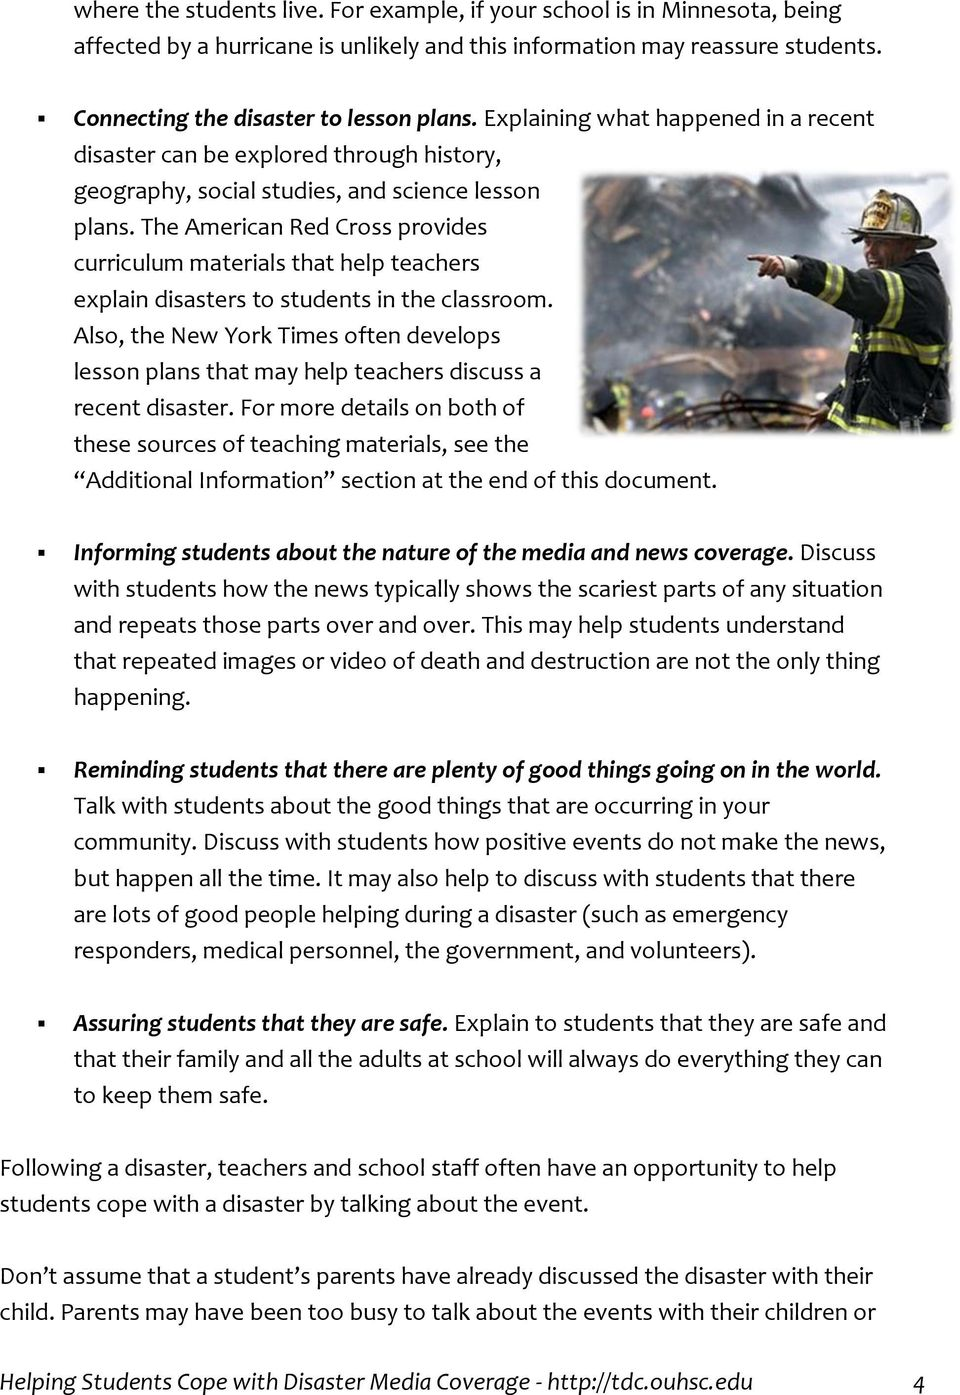 The American Red Cross provides curriculum materials that help teachers explain disasters to students in the classroom.